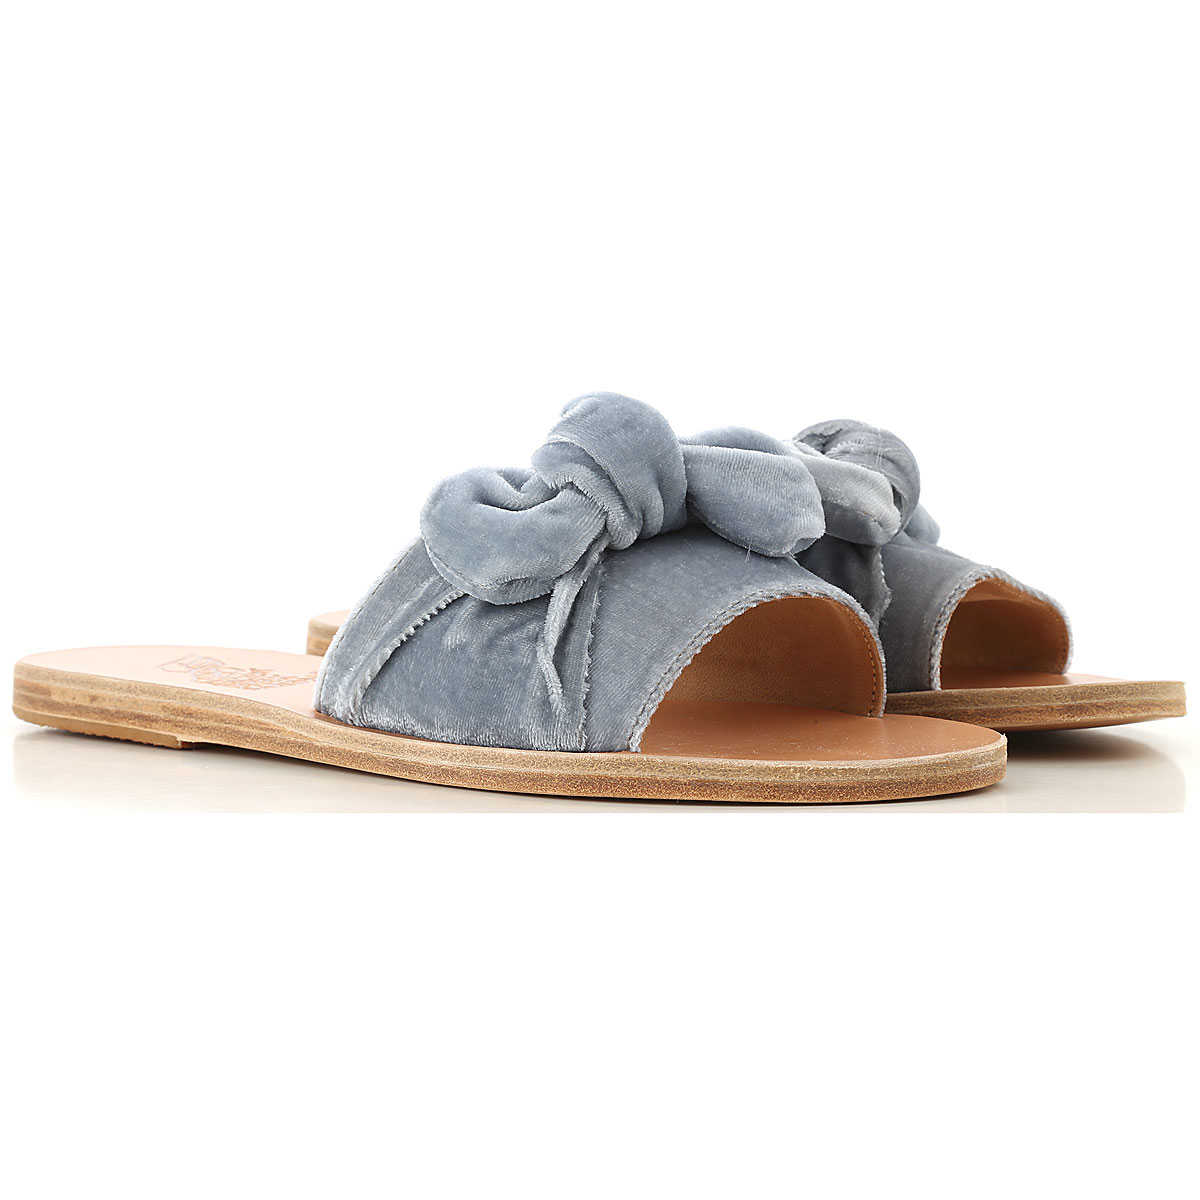 Ancient Greek Sandals Sandals for Women On Sale in Outlet